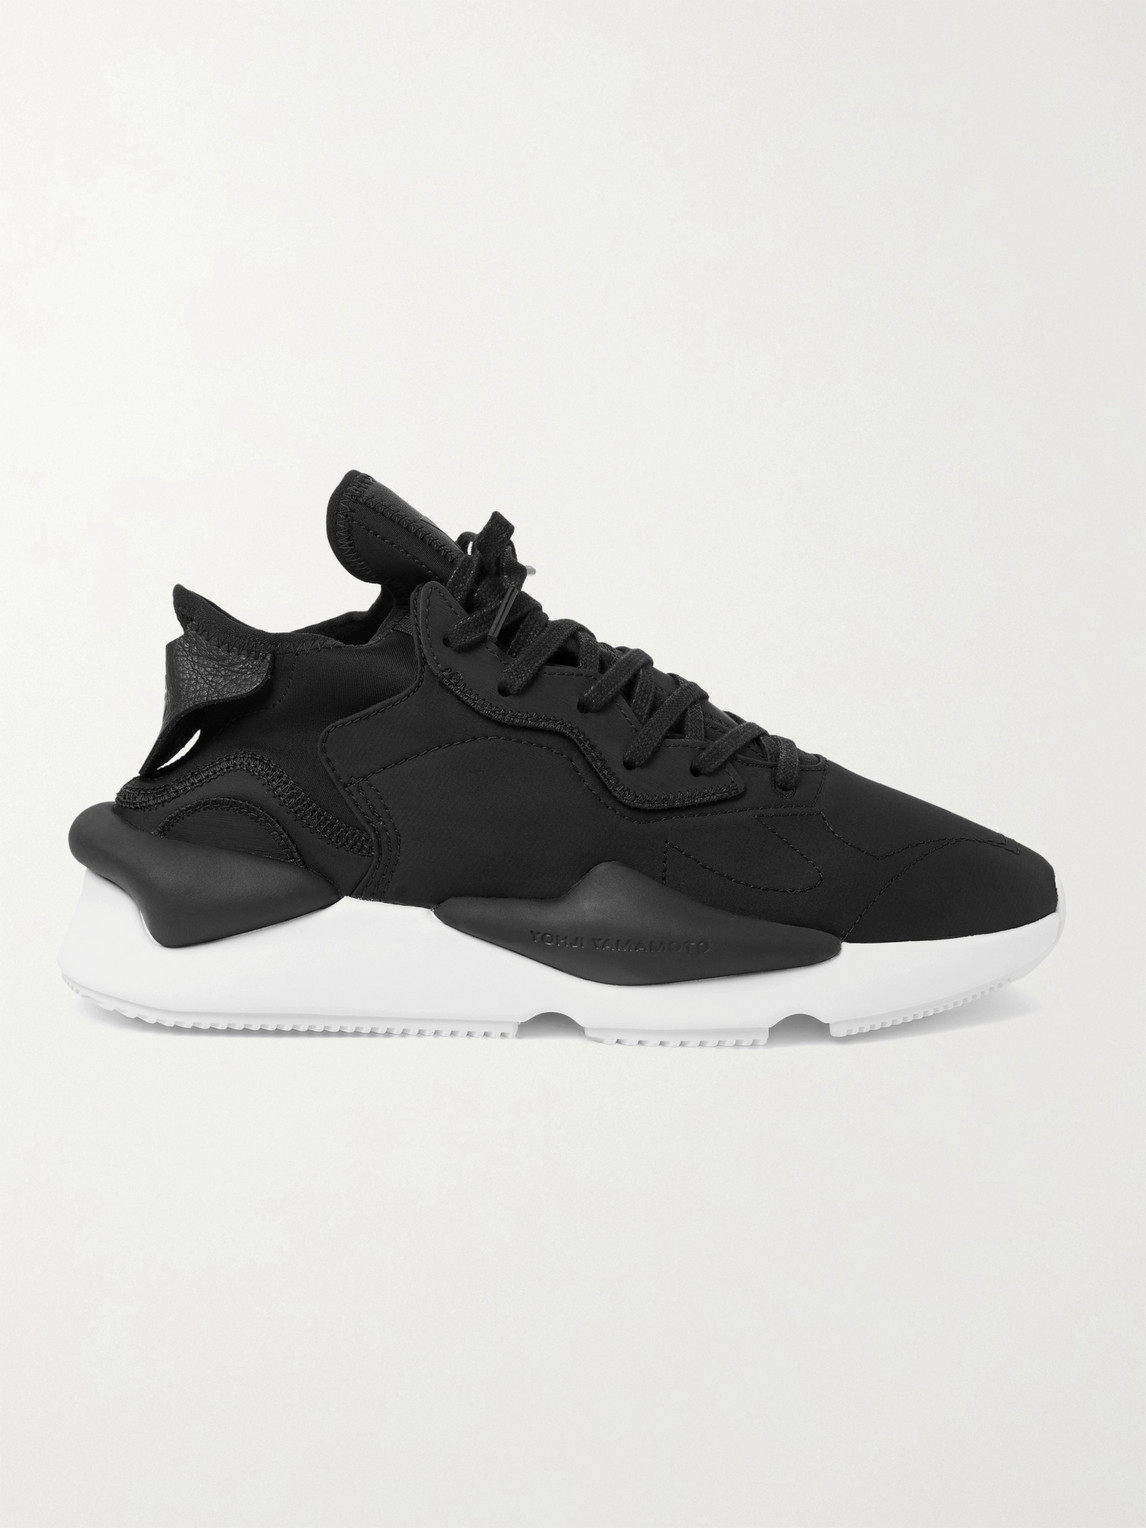 Y-3 Leathers KAIWA LEATHER-TRIMMED NYLON-RIPSTOP AND NEOPRENE SNEAKERS